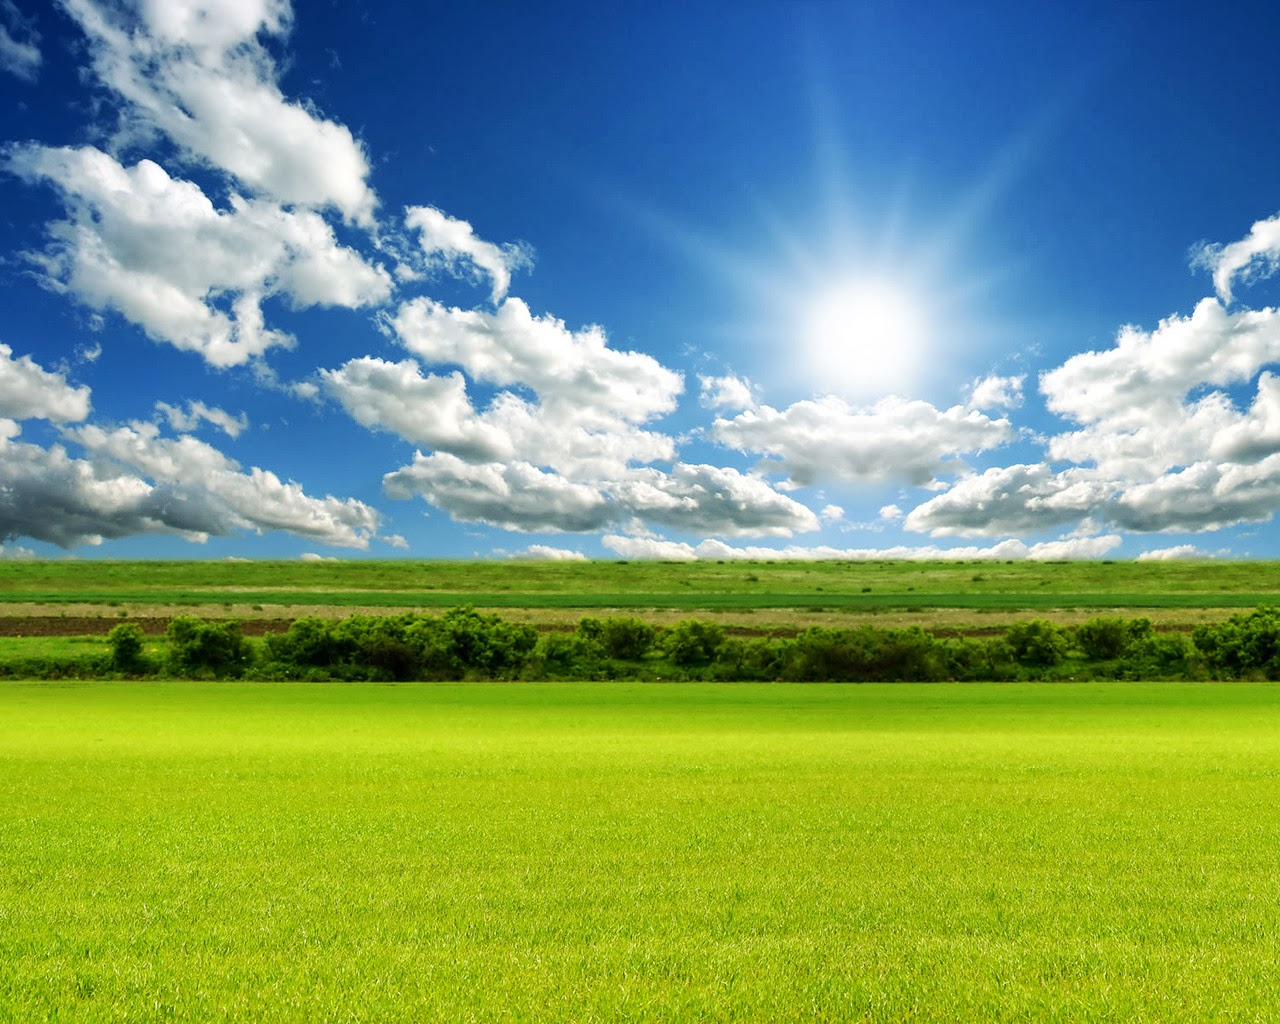 Hd wallpaper download for pc - Full Hd Nature Wallpapers Free Download For Laptop Pc Desktop